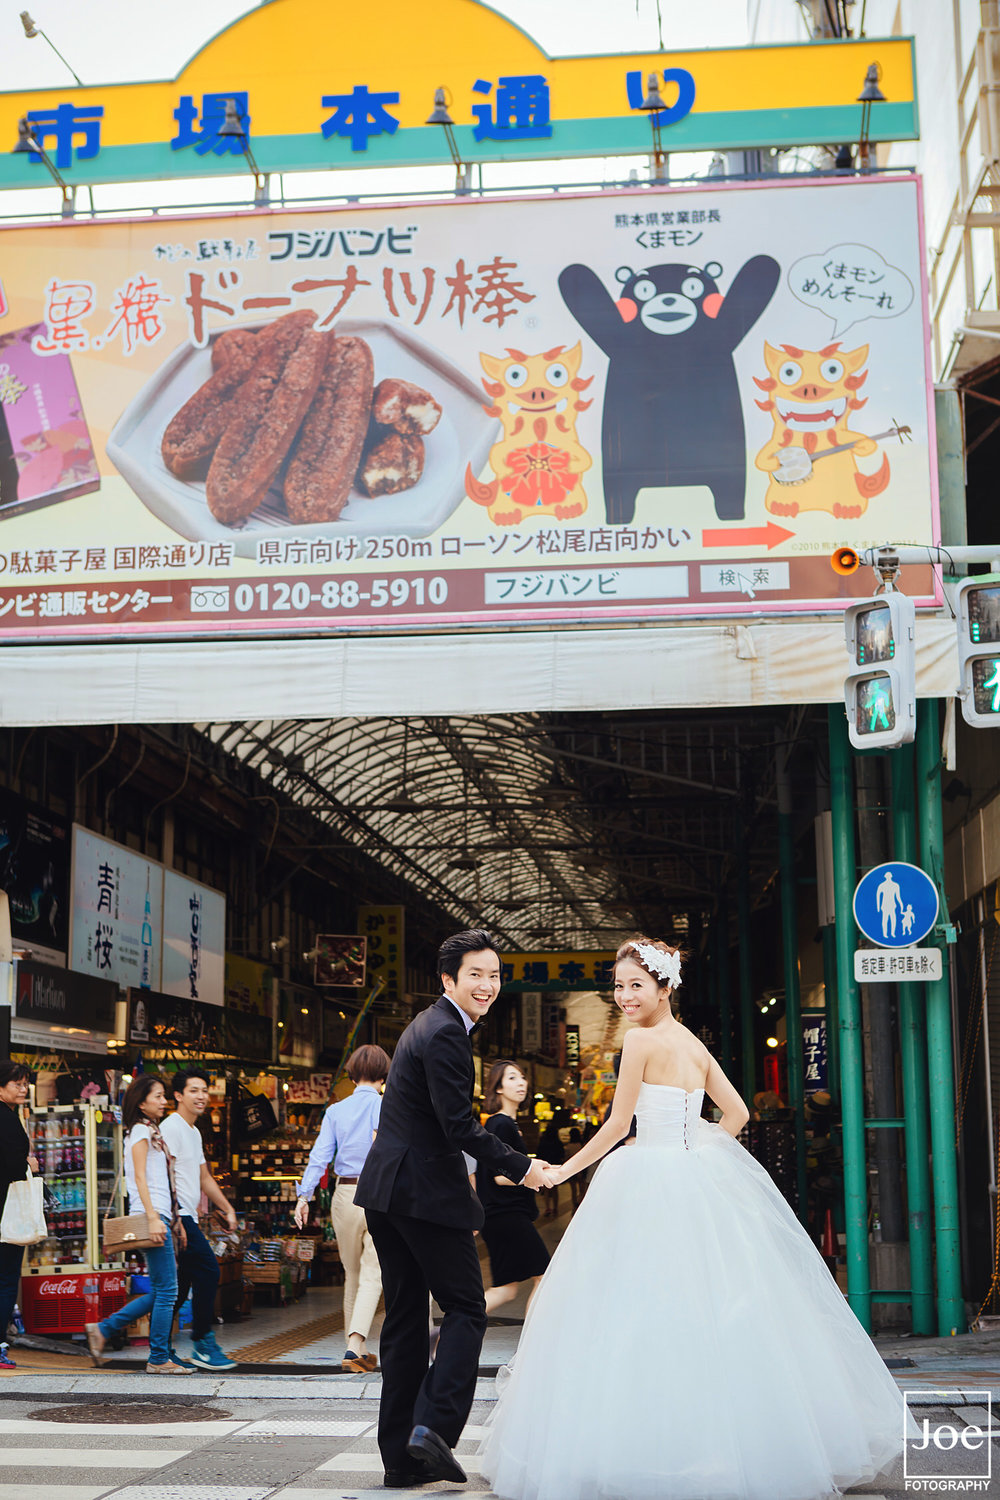 09-okinawa-kokusai-dori-pre-wedding-melody-amigo-joe-fotography.jpg